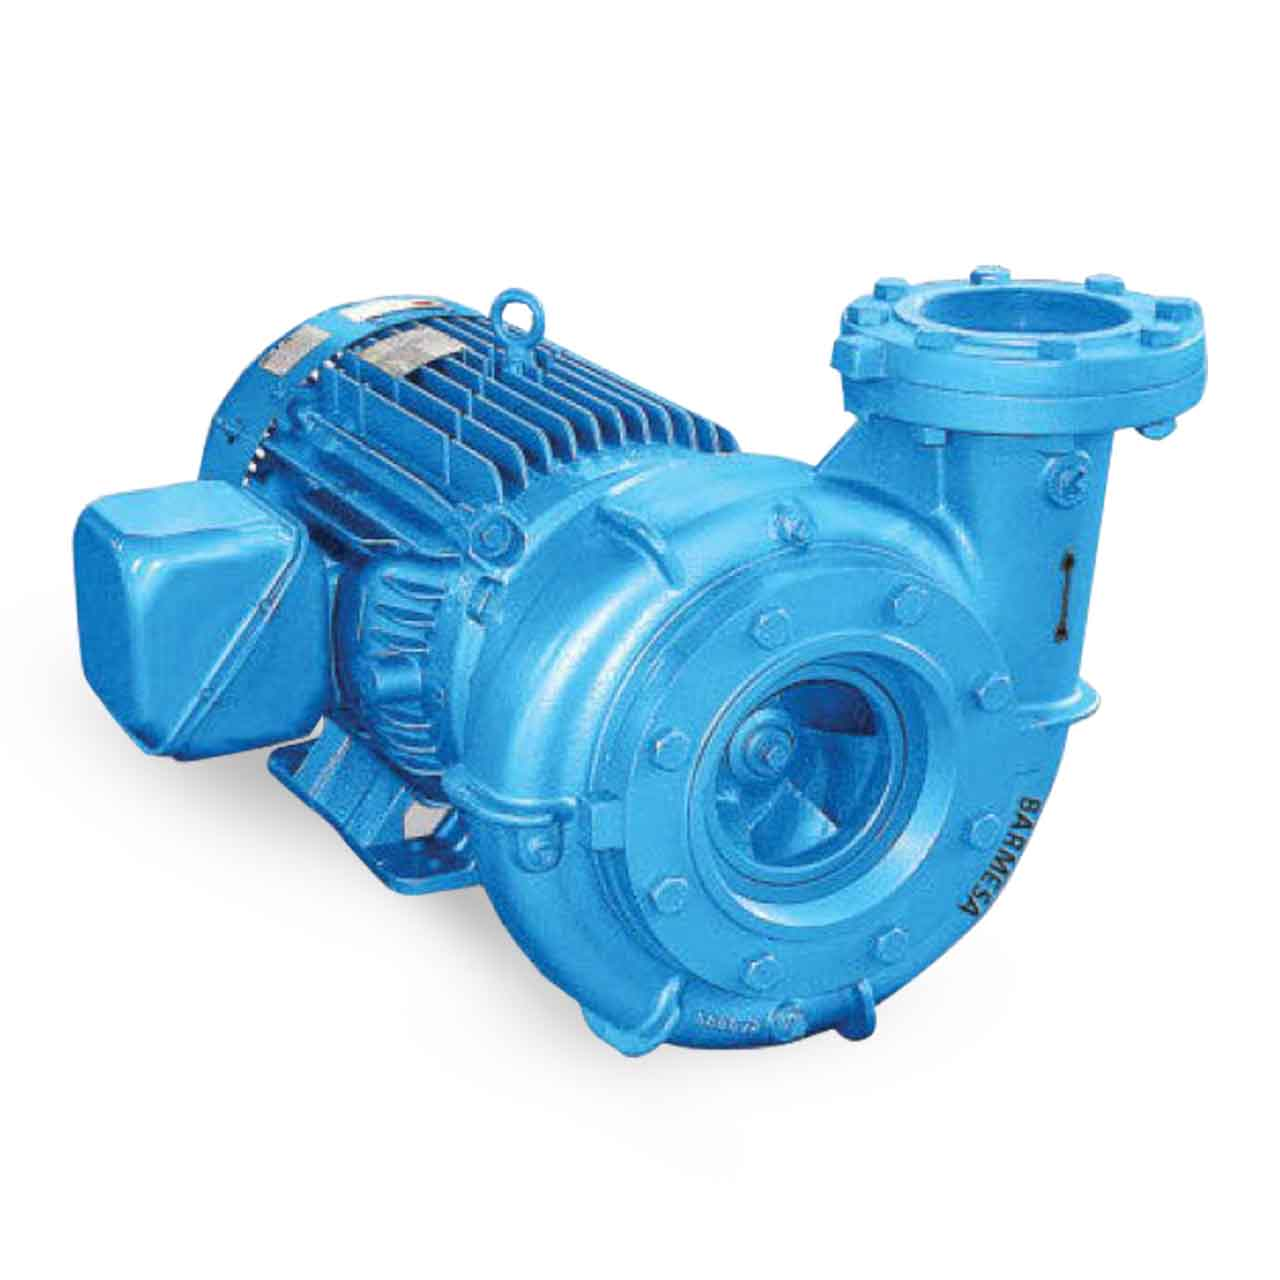 All End-Suction Centrifugal Pumps